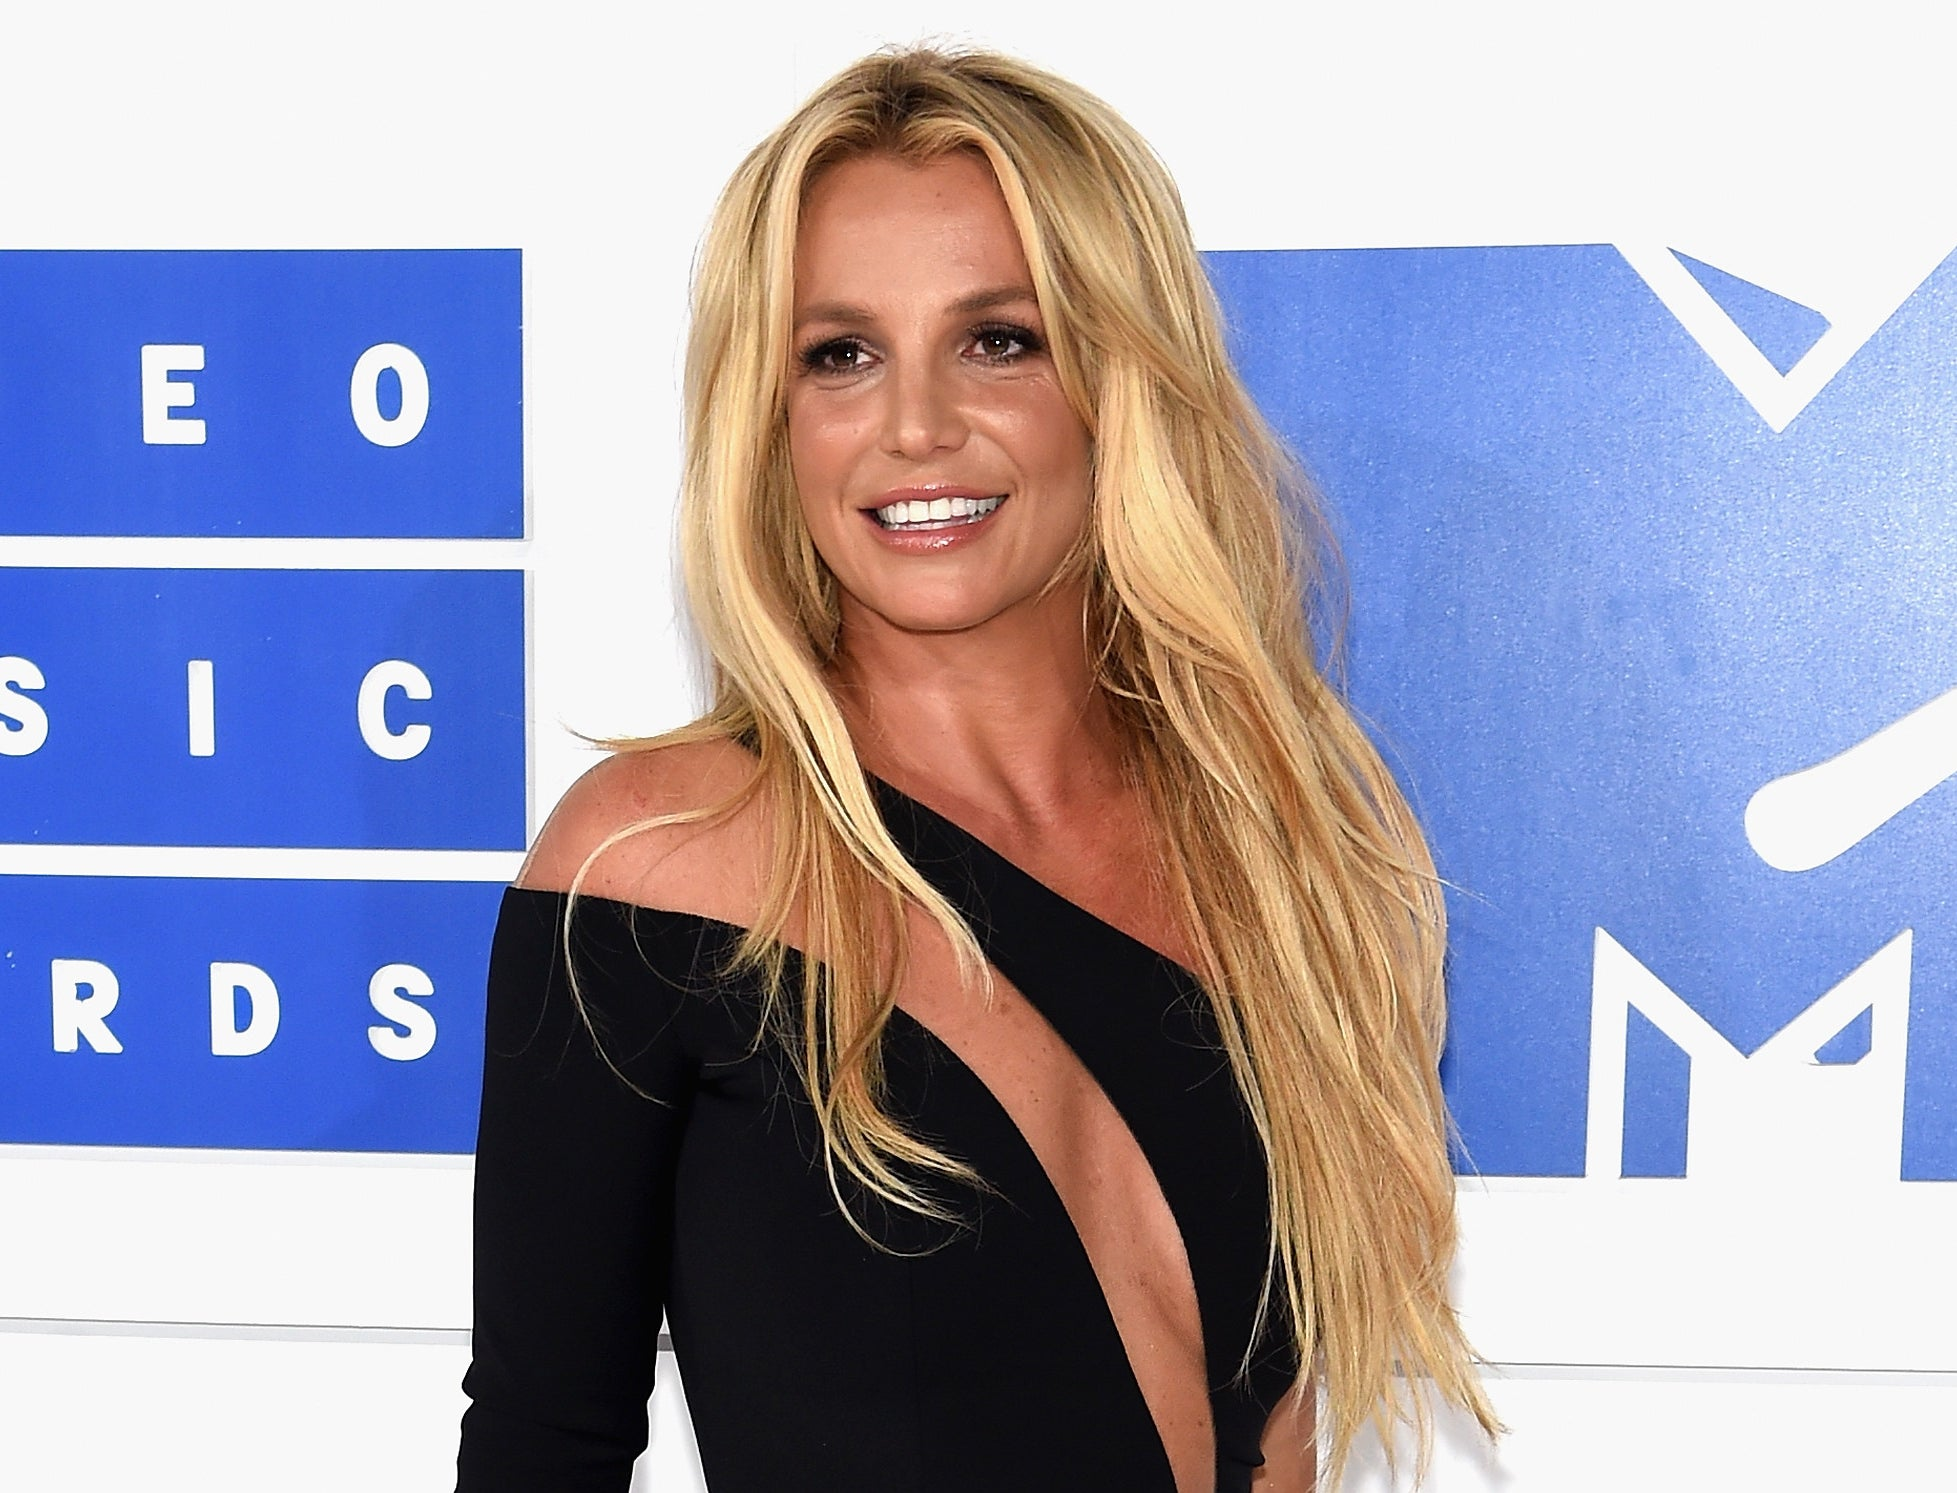 Britney wears a black one shoulder dress with a cut out design